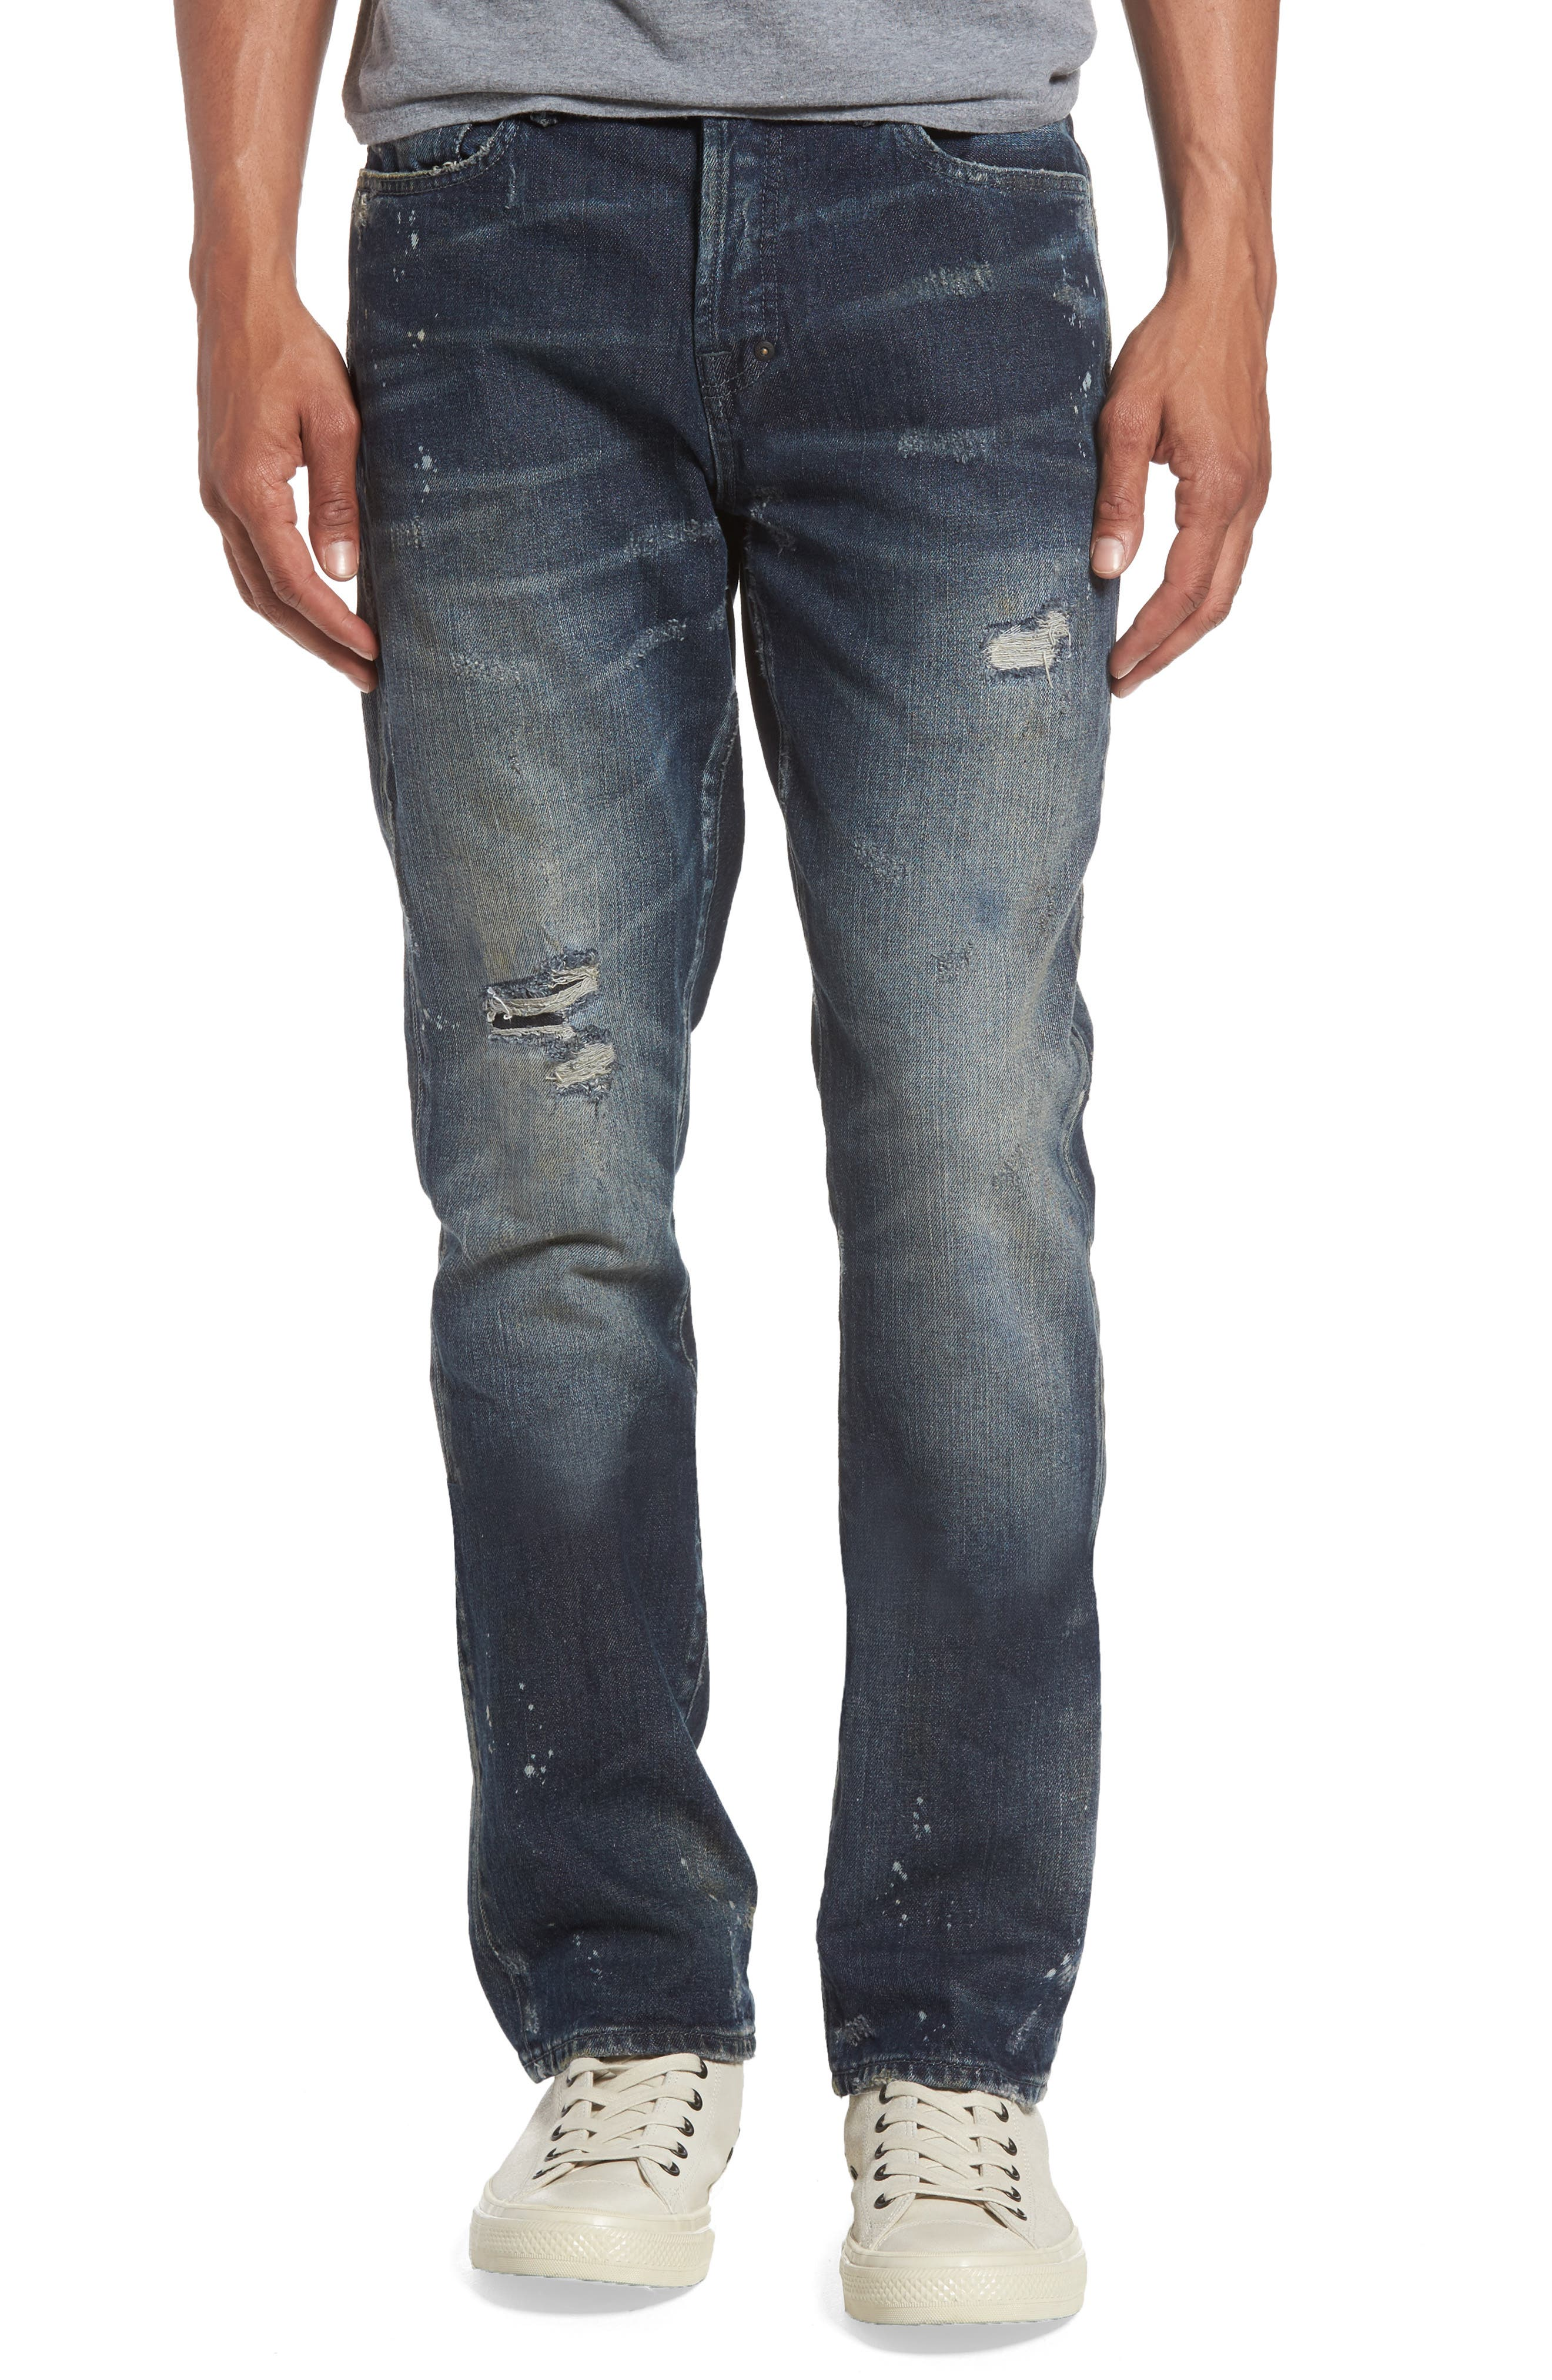 Alternate Image 1 Selected - PRPS Demon Slim Straight Leg Jeans